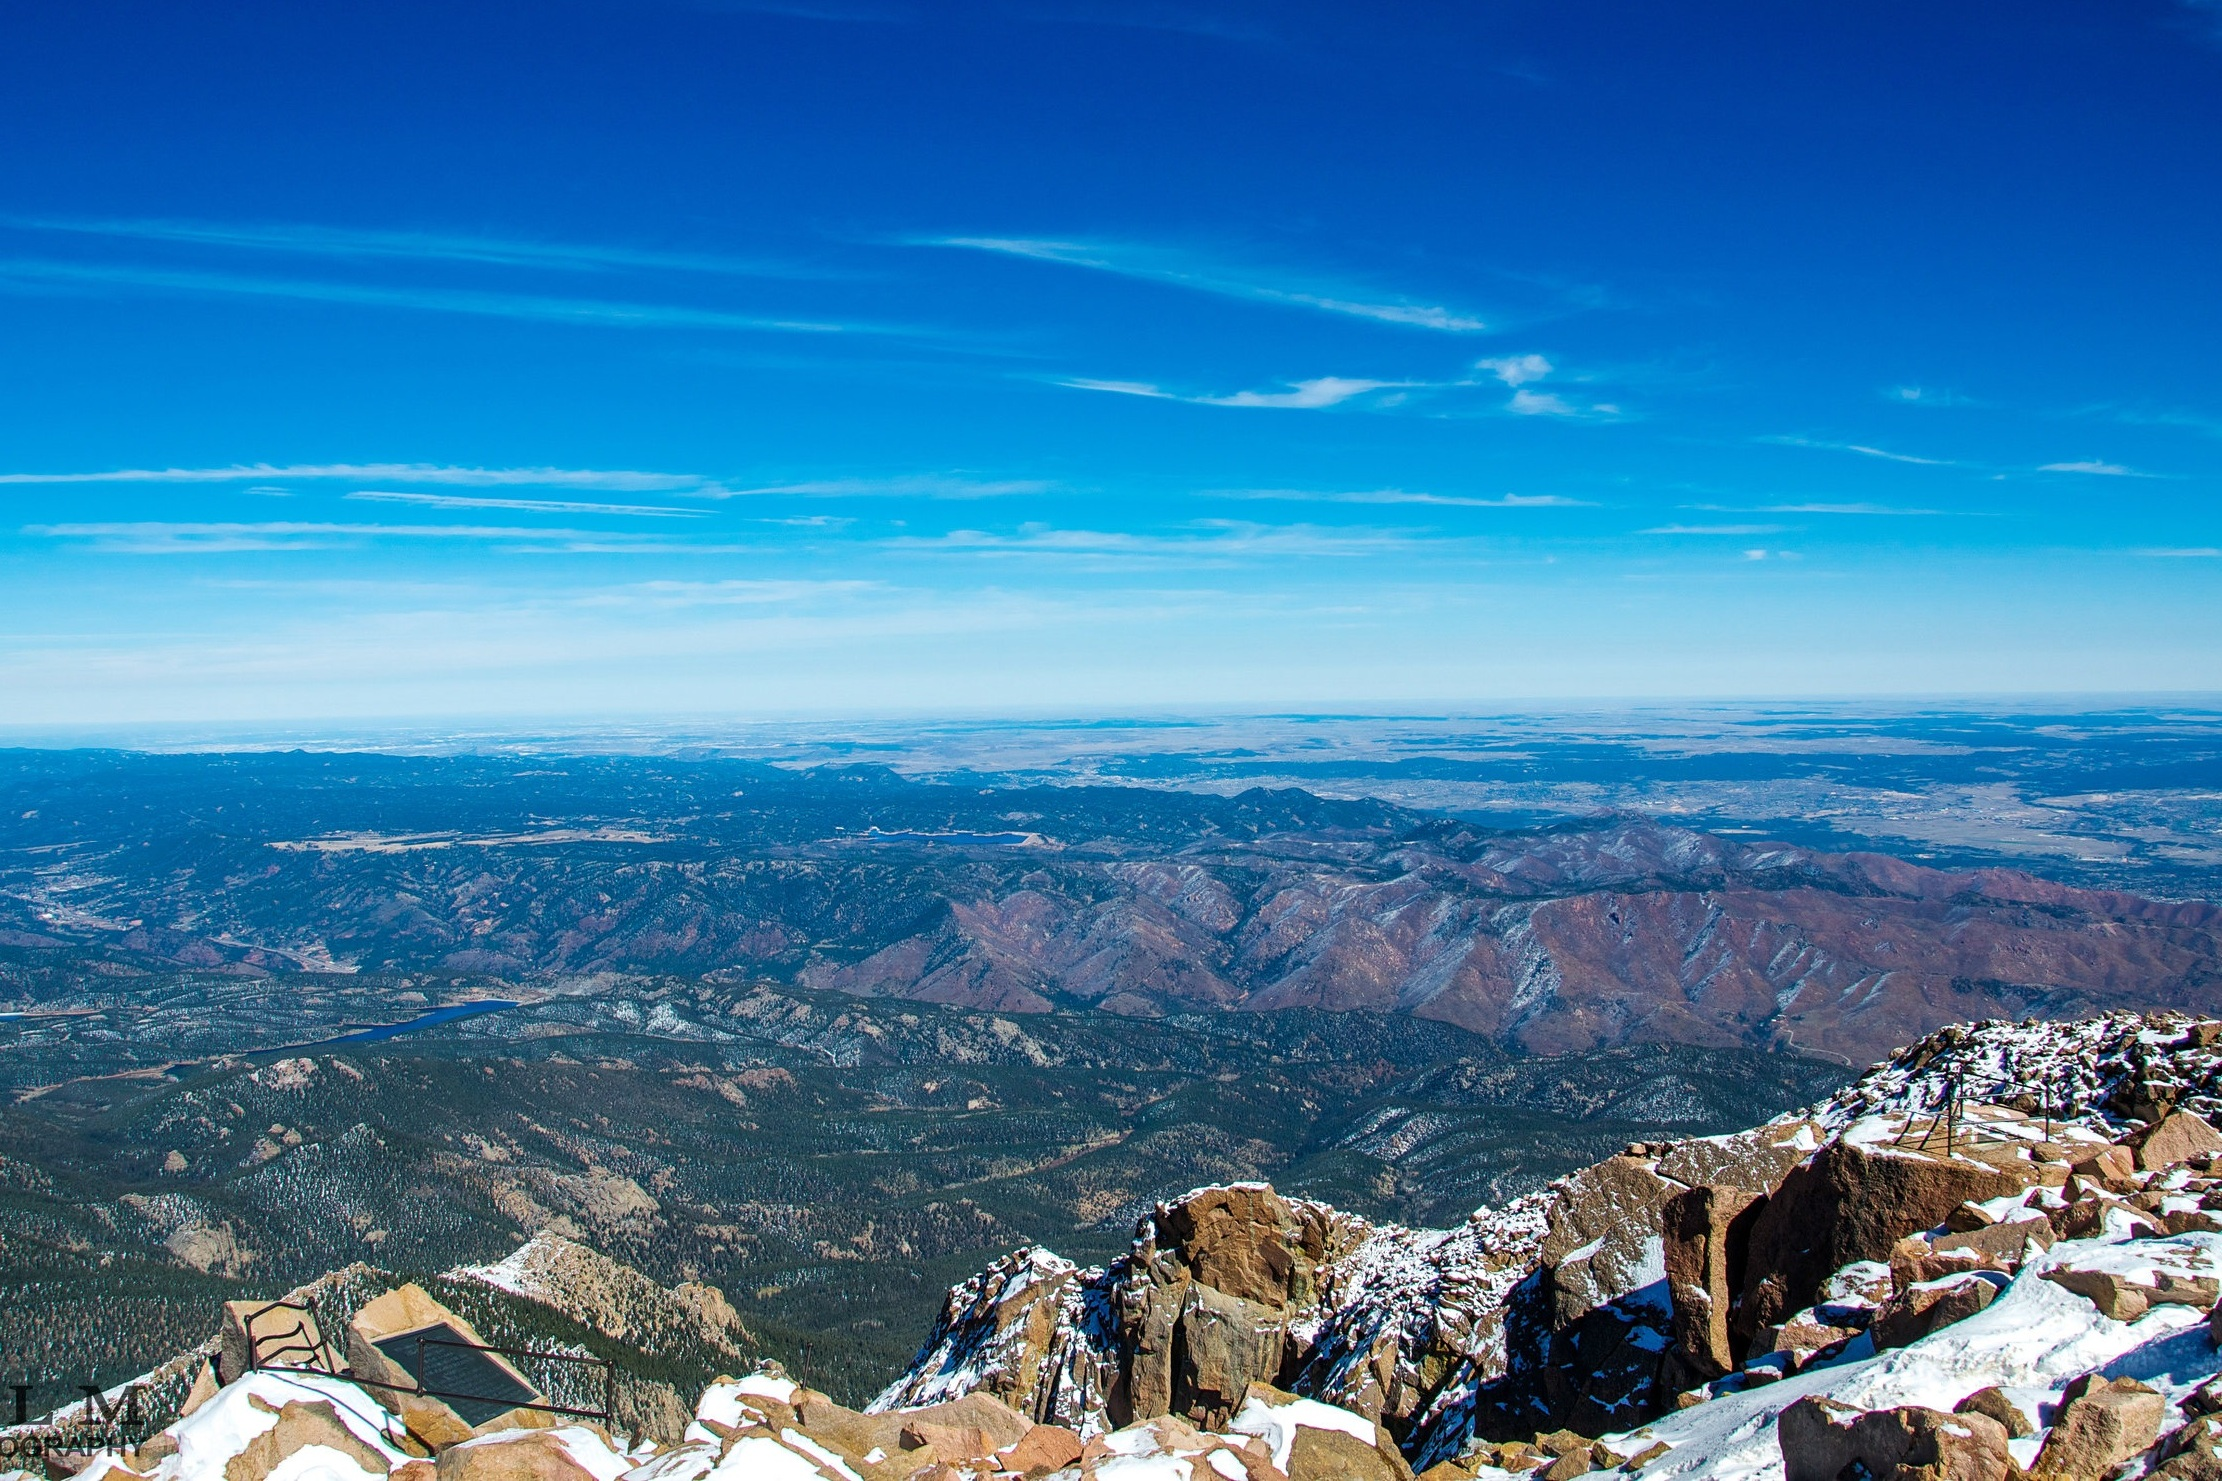 Pikes Peak Summit - Difficulty: ChallengingTime: 7 - 9 Hours (One Way)Distance: 7 Miles (One Way)Time: 12 Hours (Round Trip)Distance: 14 Miles (Round Trip